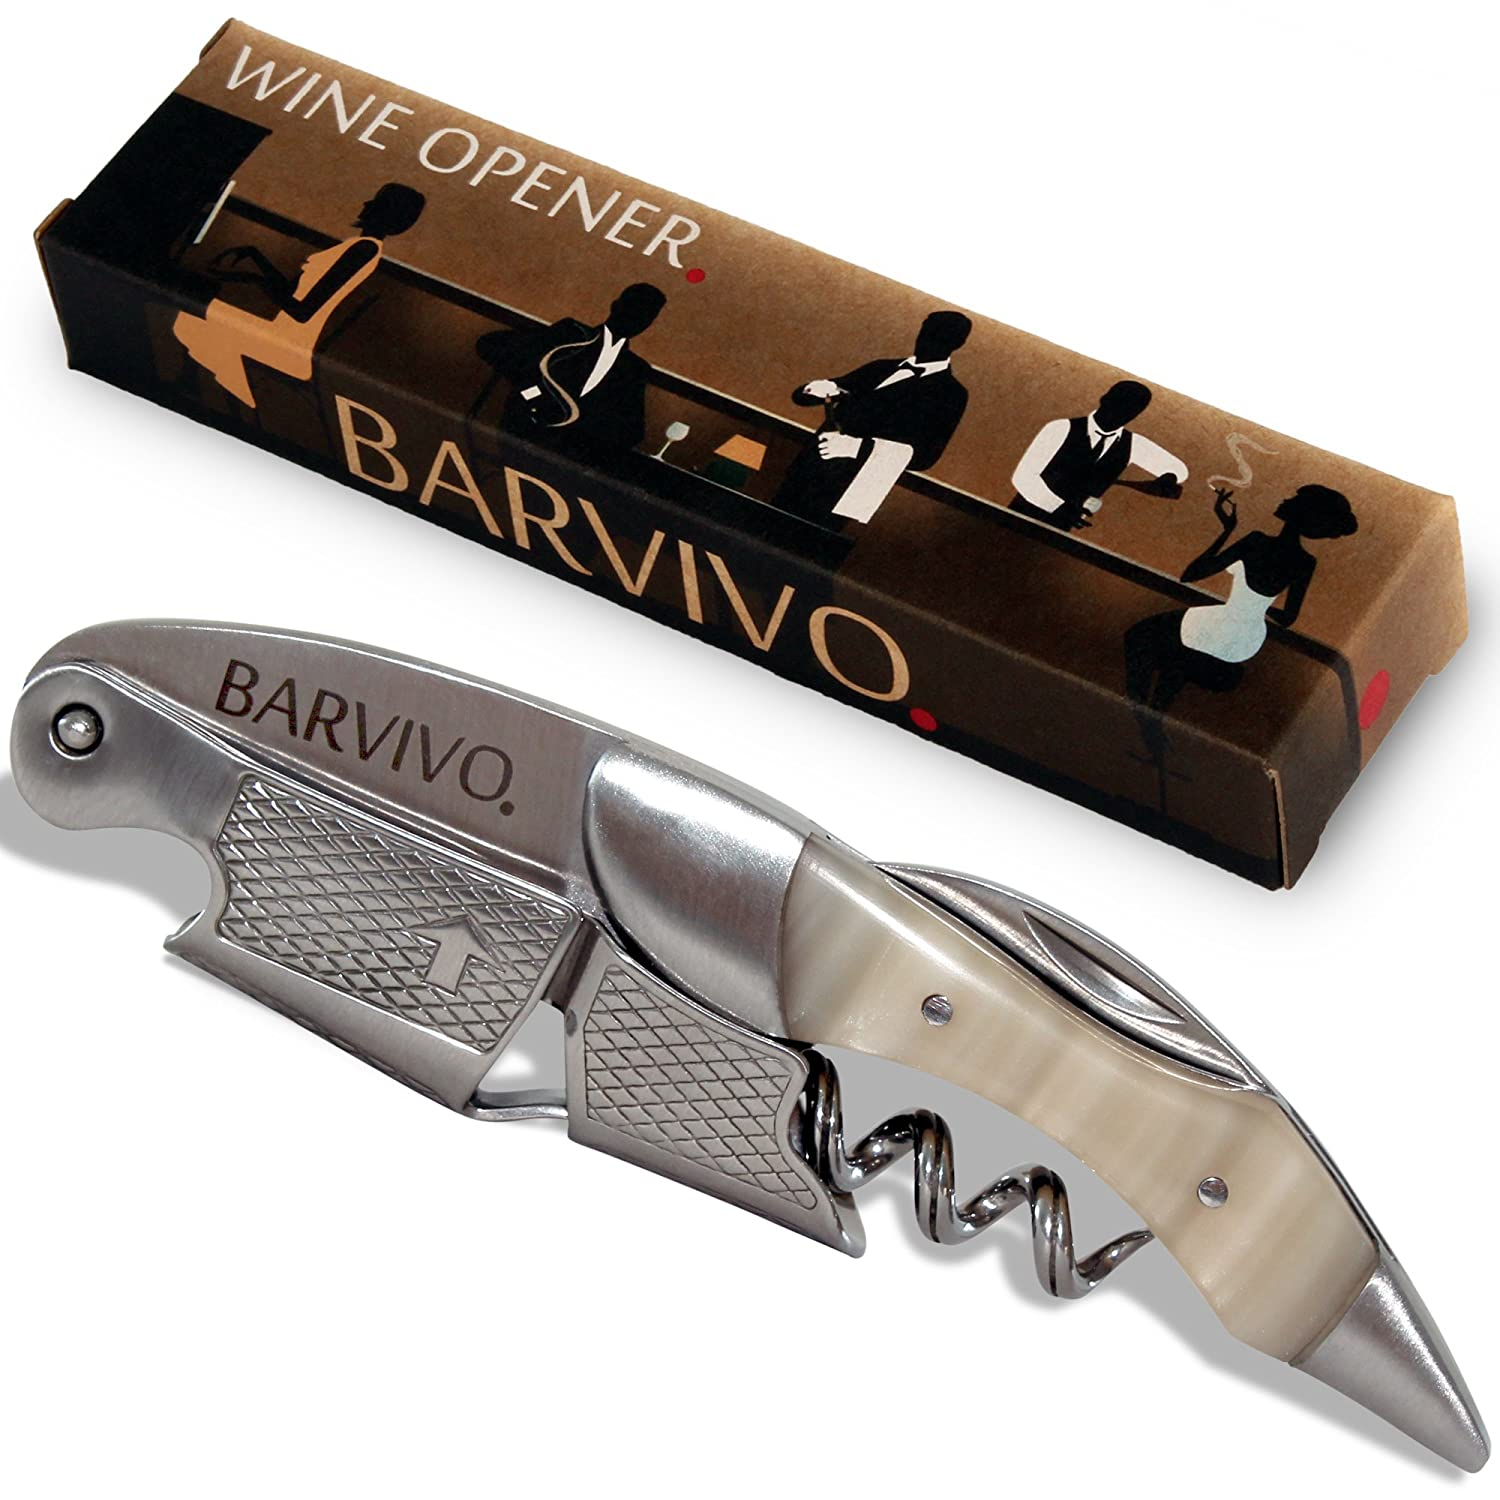 Barvivo Professional Waiters Corkscrew This Bottle Opener for Beer and Wine Bottles is Used by Waiters, Sommelier and Bartenders Around The World. Made of Stainless Steel and Bai Ying Wood.